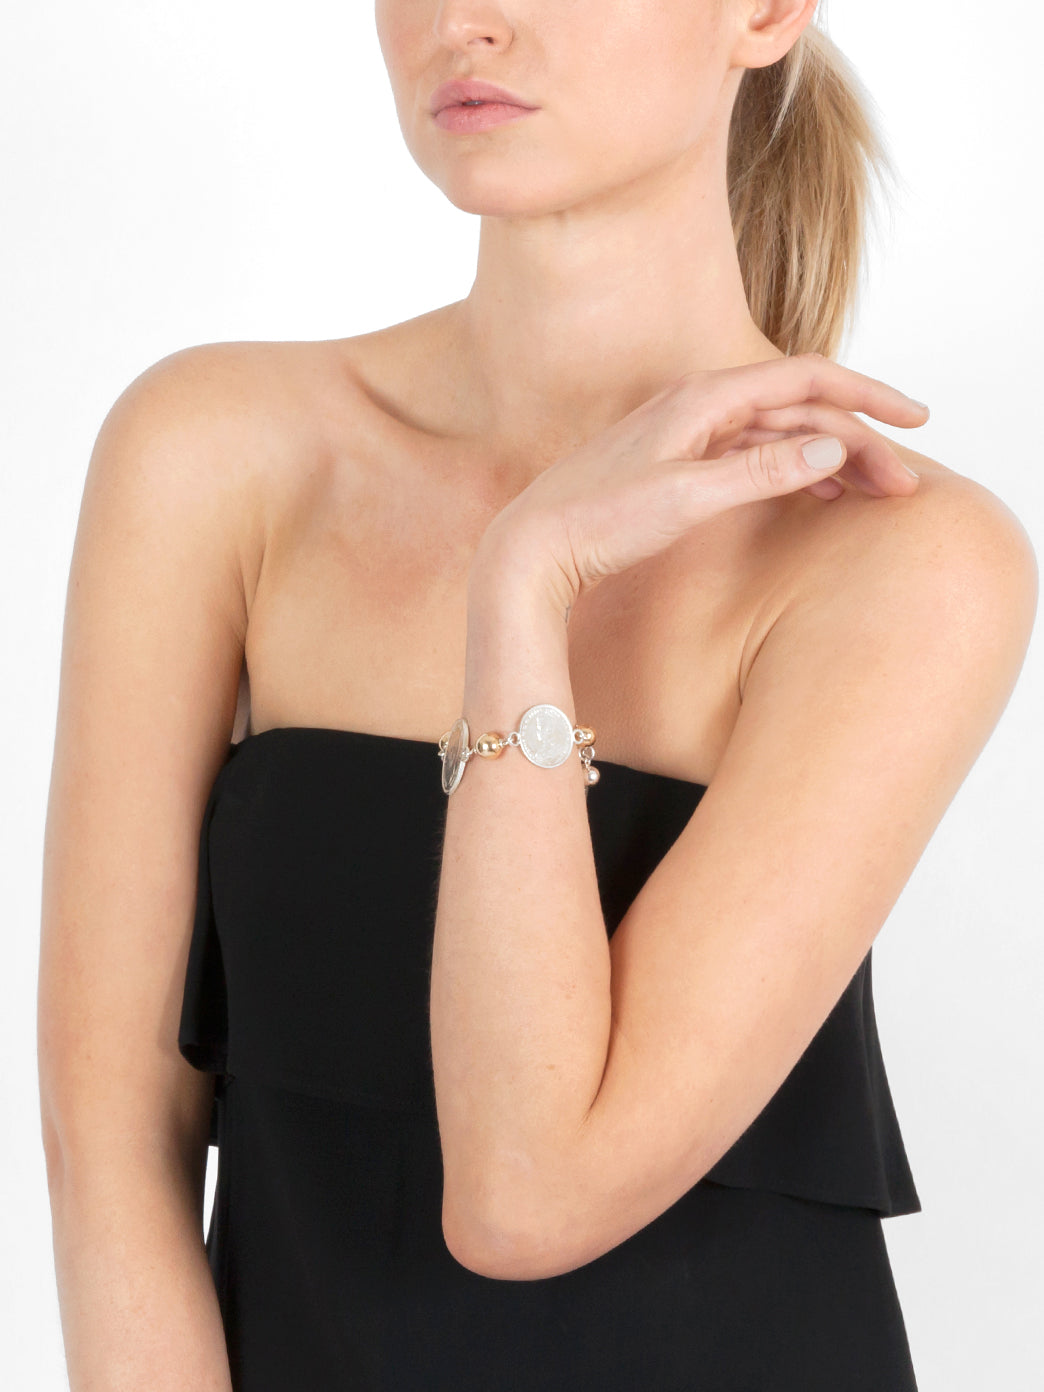 Fiorina Jewellery Poly Bracelet Model